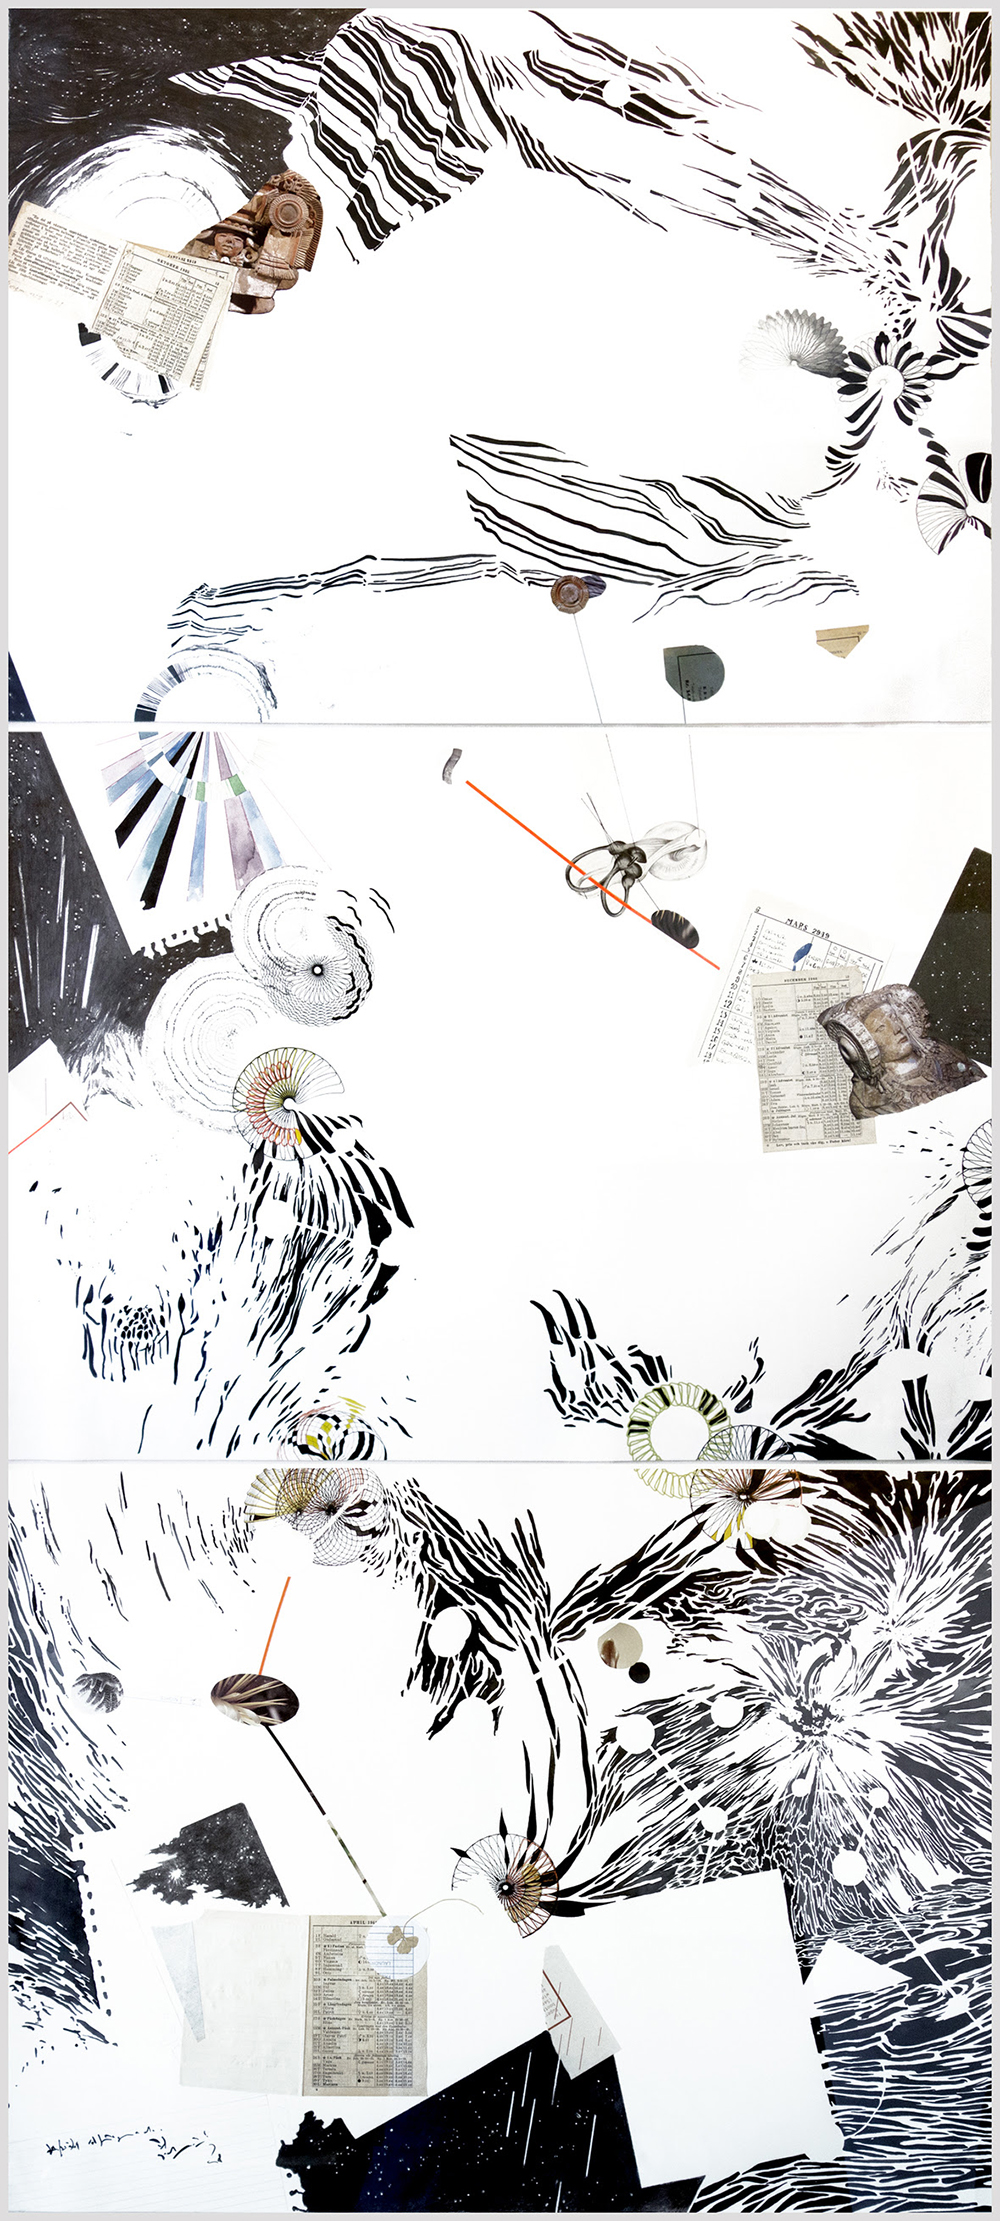 Helena Fernández-Cavada, Time appropriation. From the series Whatever I feel like. 3 pieces, 60 x 80 cm. Graphite, chinese ink, watercolor and collage on paper, 2017-2018.